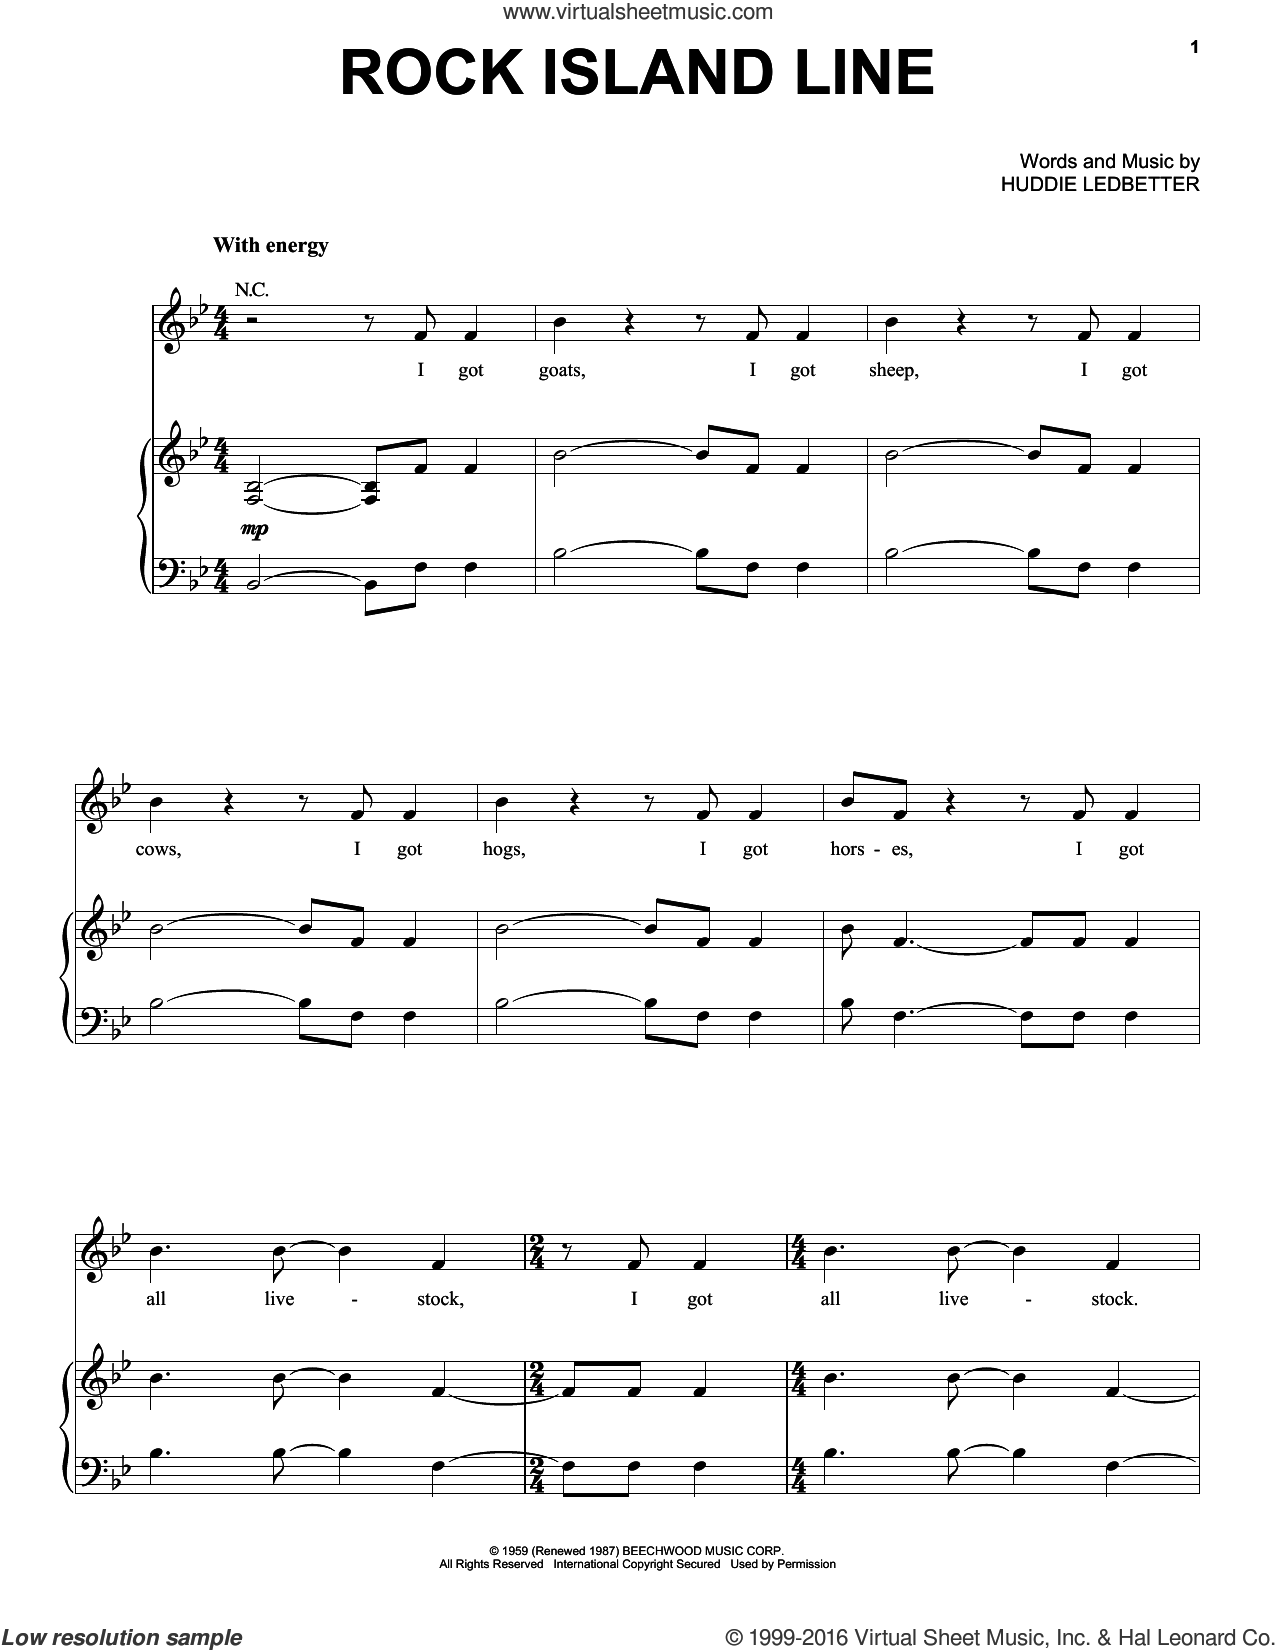 Rock Island Line sheet music for voice, piano or guitar by Huddie Ledbetter